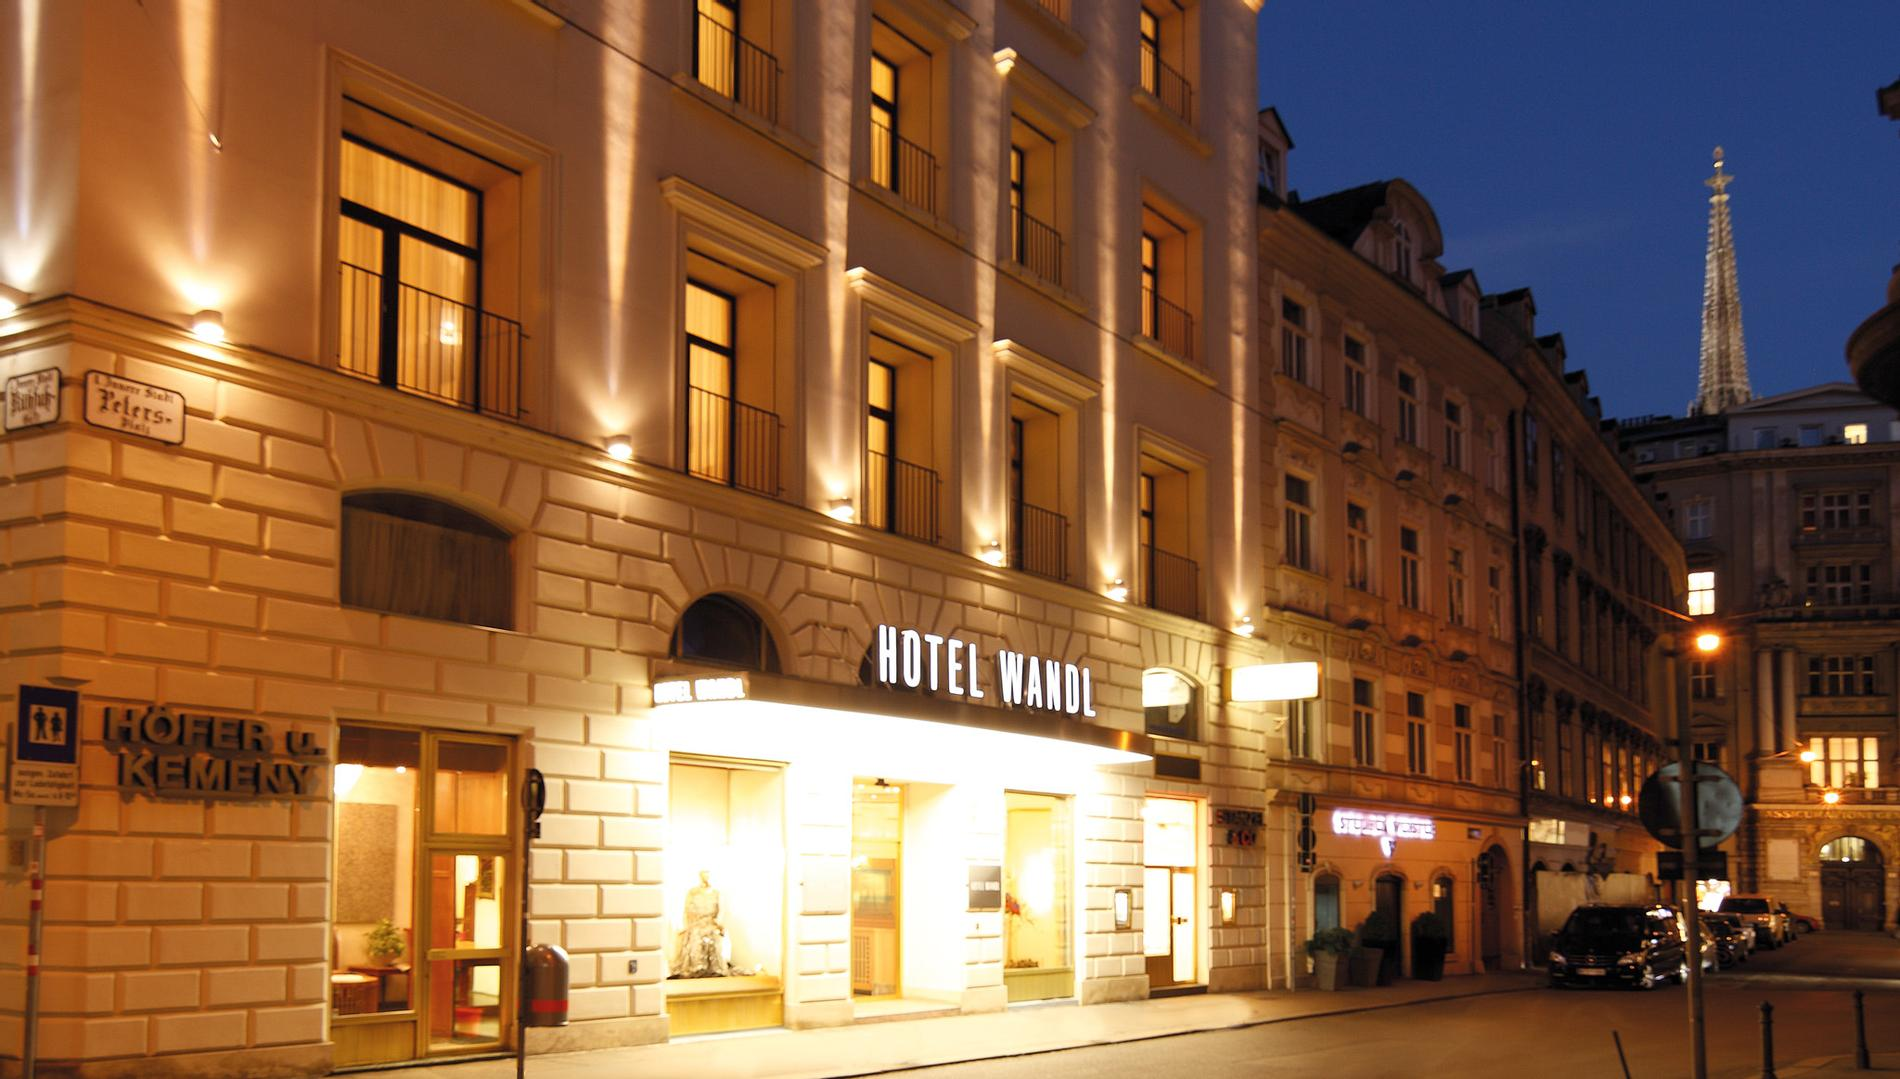 Hotel Wandl Vienna Welcome In The Heart Of